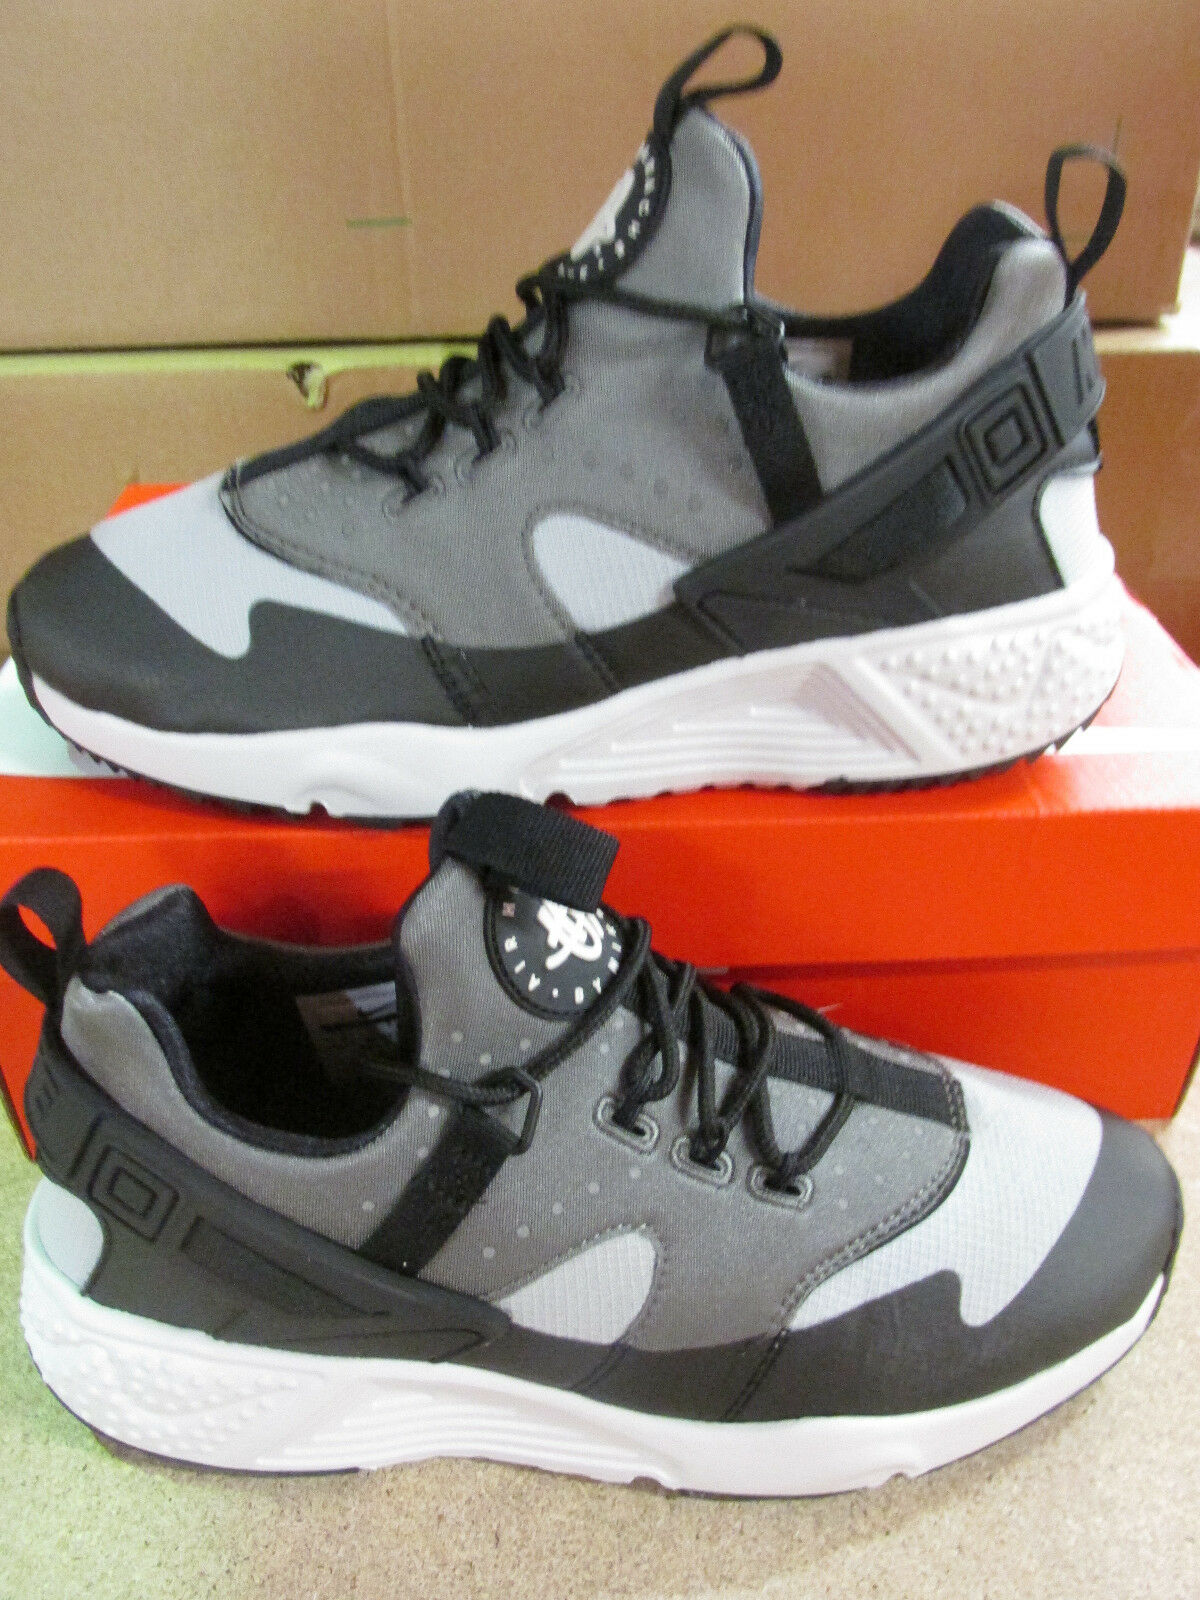 nike air huarache utility sneakers Hombre trainers 806807 003 sneakers utility Zapatos b9451c